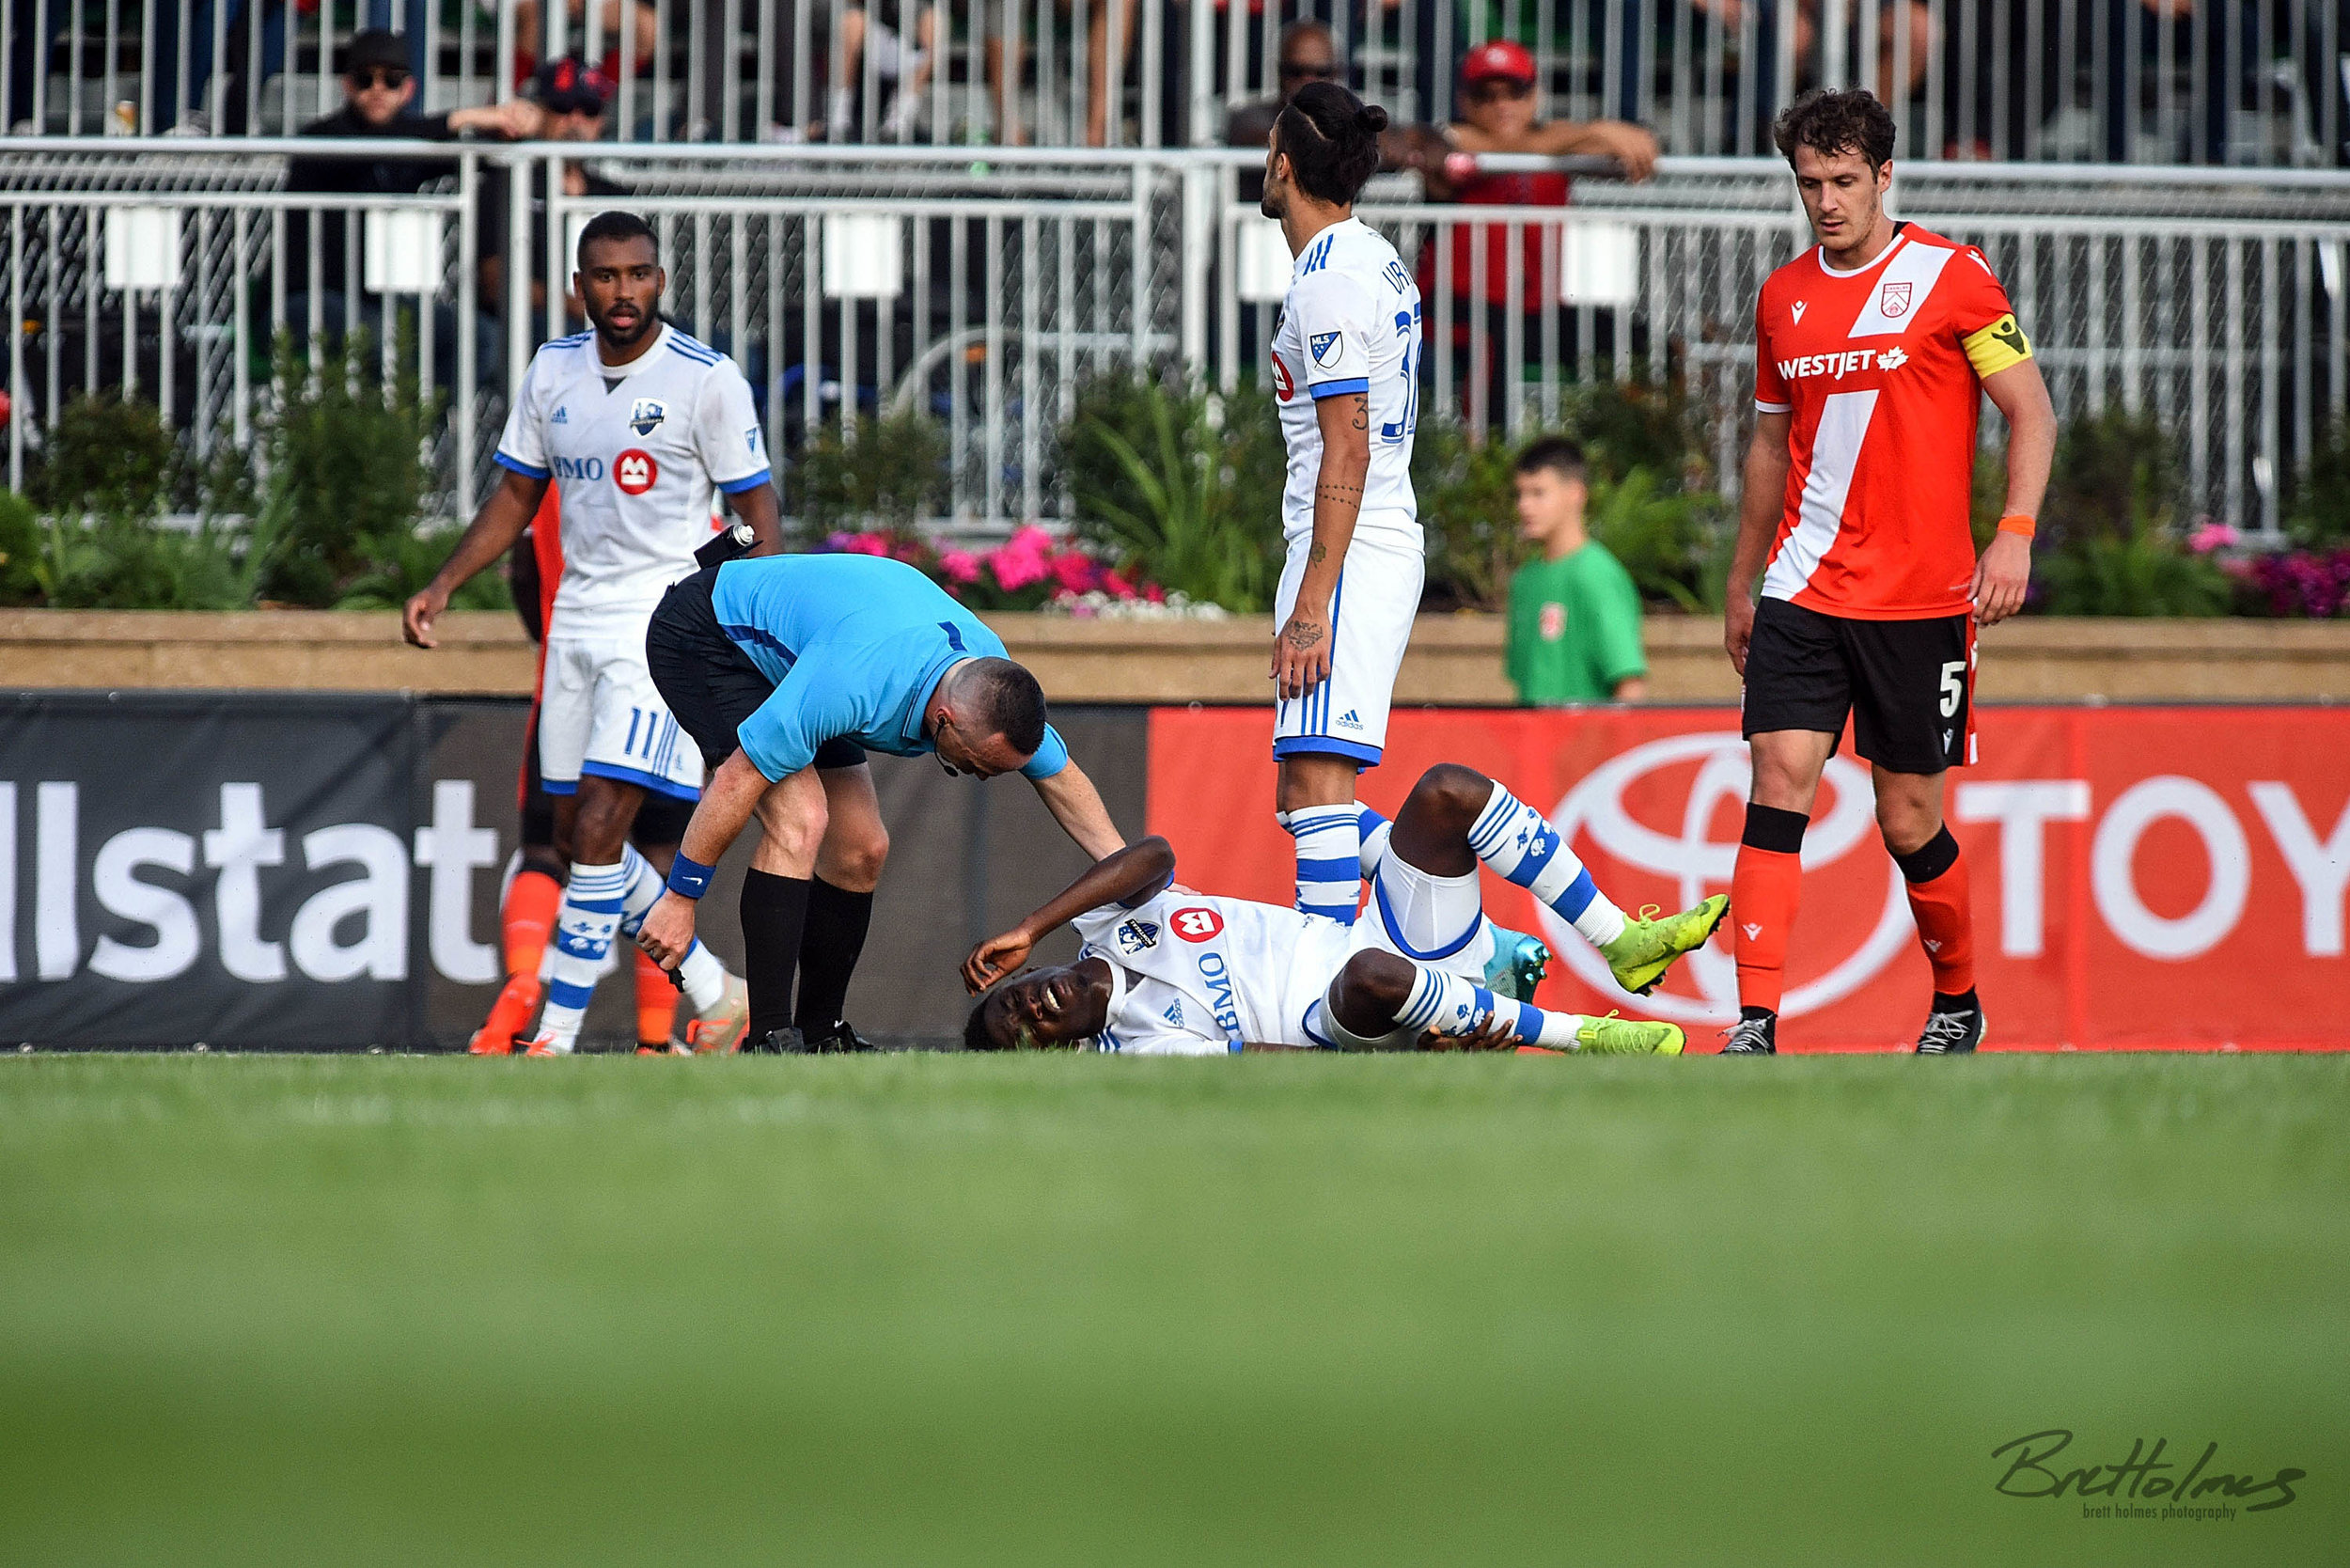 CALGARY, AB - AUGUST 14: Montreal Impact defender Clément Bayiha (27) reacts after being taken down during the first half of the second leg of a Canadian Championship semifinal match between the Montreal Impact and Cavalry FC on August 14, 2019, at ATCO Field at Spruce Meadows in Calgary, AB. (Photo by Brett Holmes/Icon Sportswire)